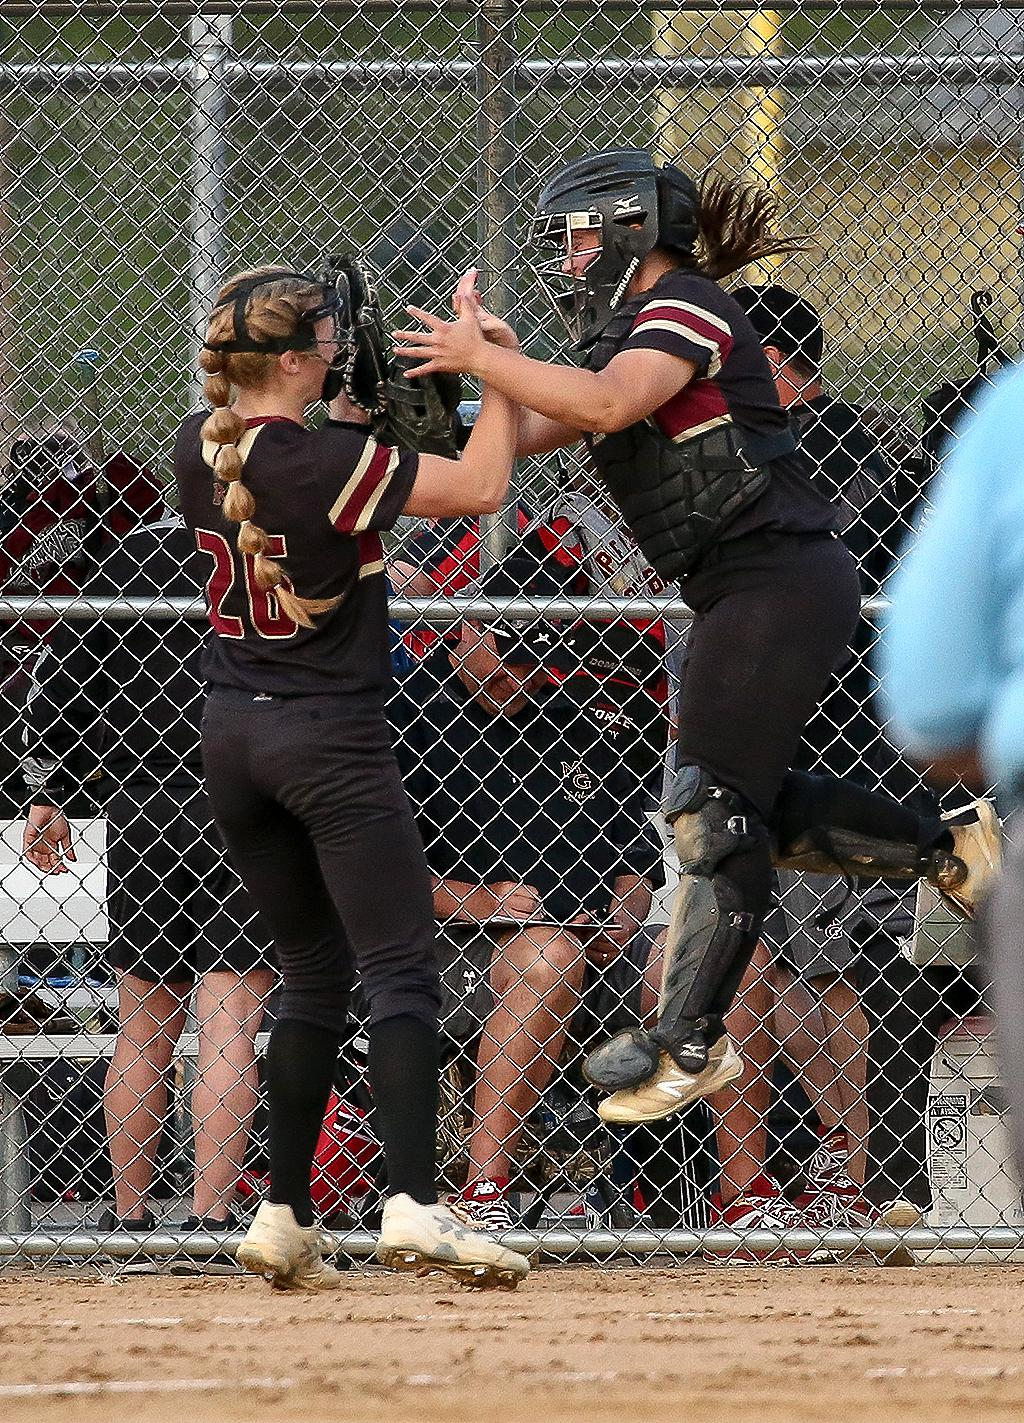 Pitcher Ava Dueck and catcher Sophie Culhane celebrate after shutting down Centennial's best scoring chance of the game. With the bases loaded, Dueck threw a pair of strikeouts to end the top of the first inning. Photo by Cheryl Myers, SporstEngine